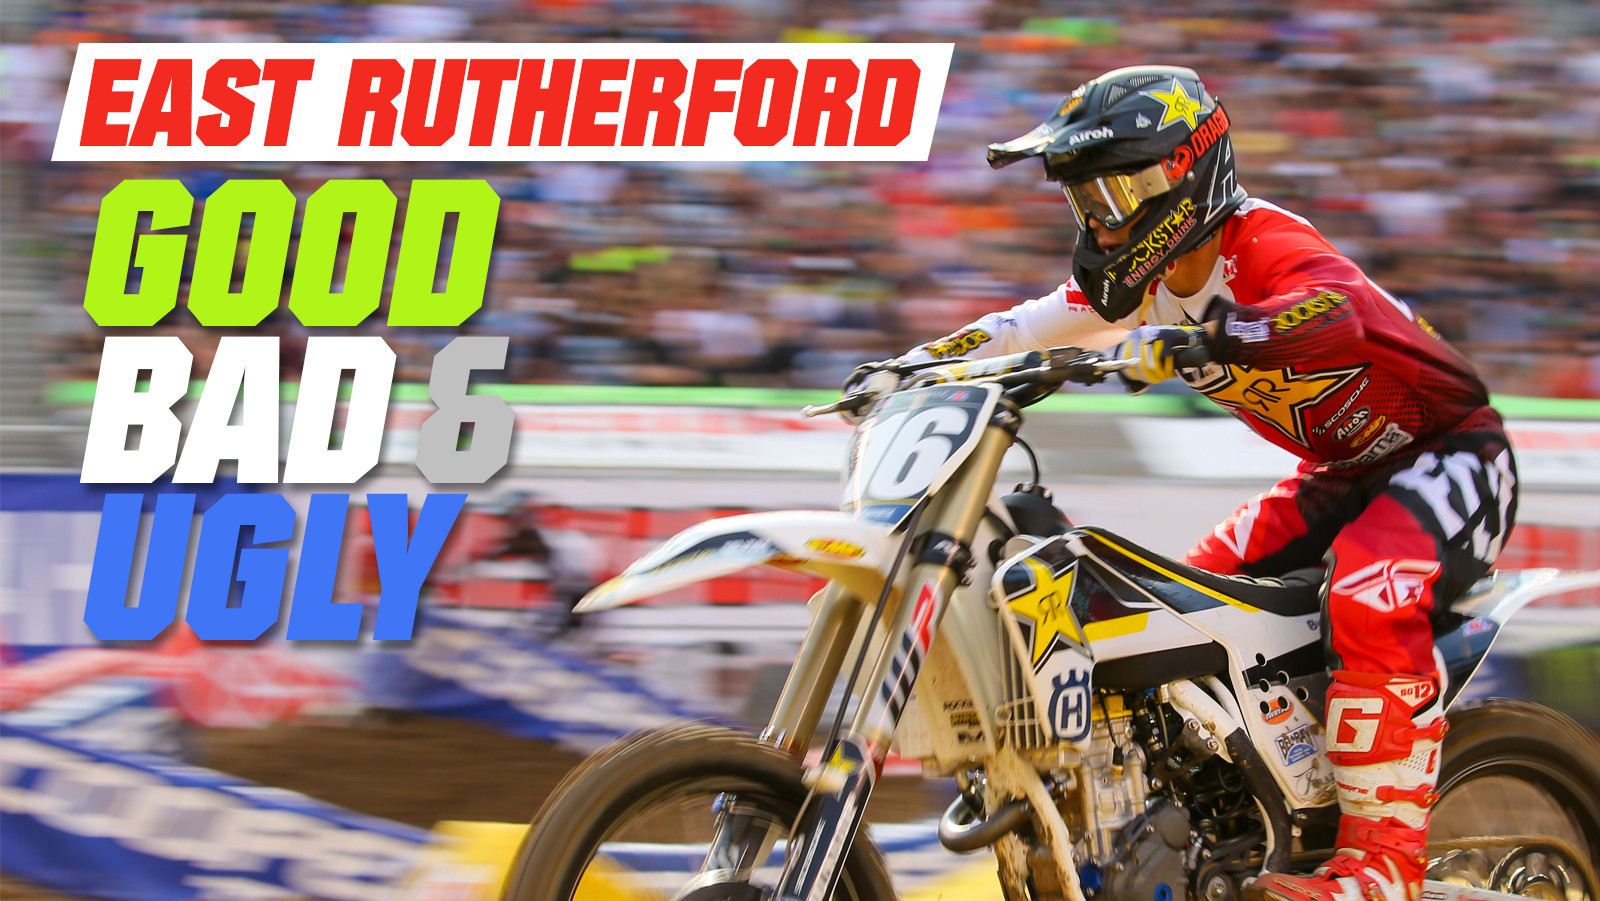 East Rutherford Supercross - The Good, the Bad, and the Ugly